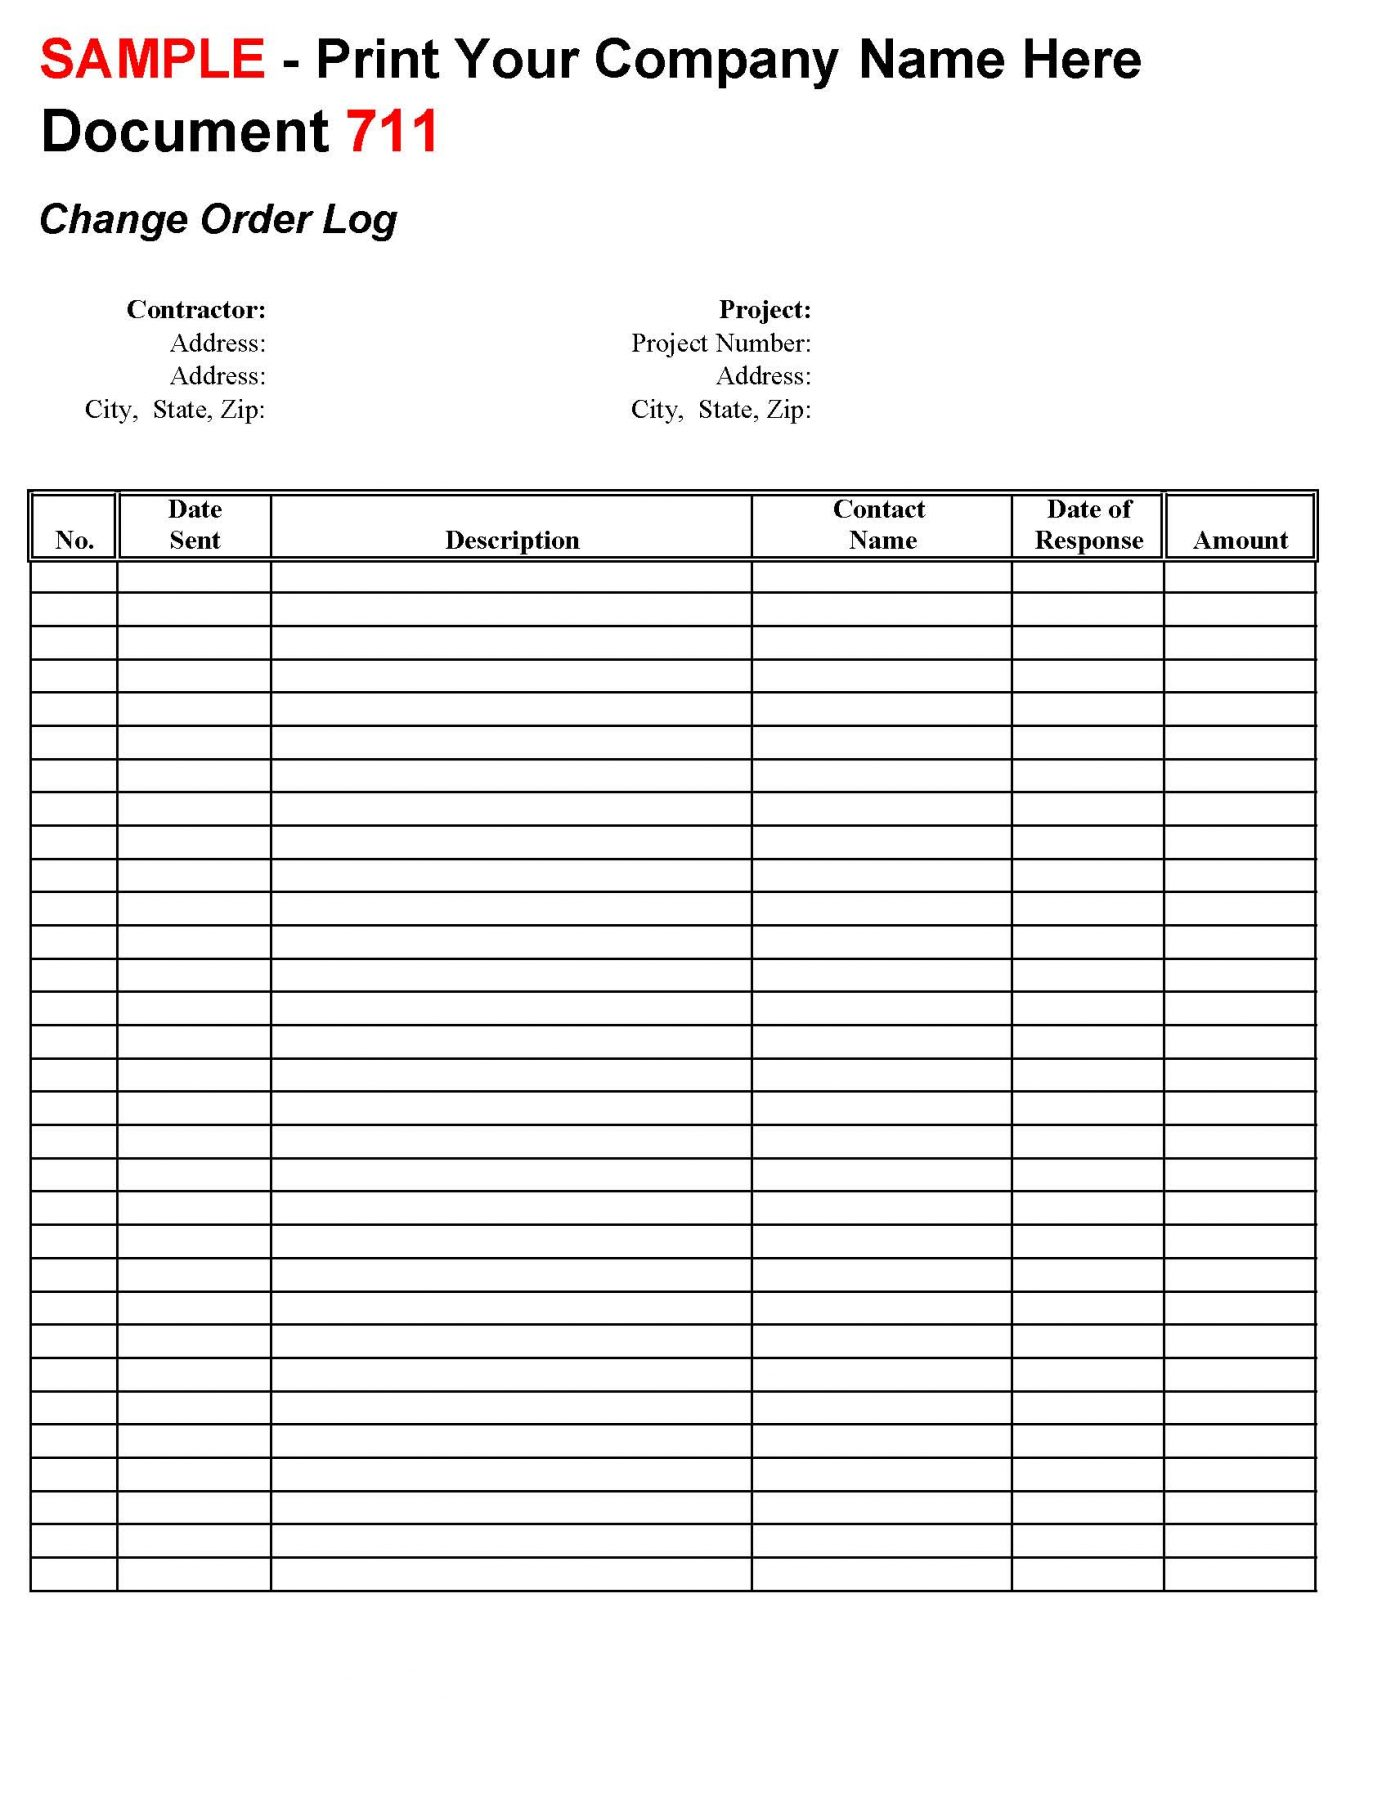 Change Order Logconstruction Office Online